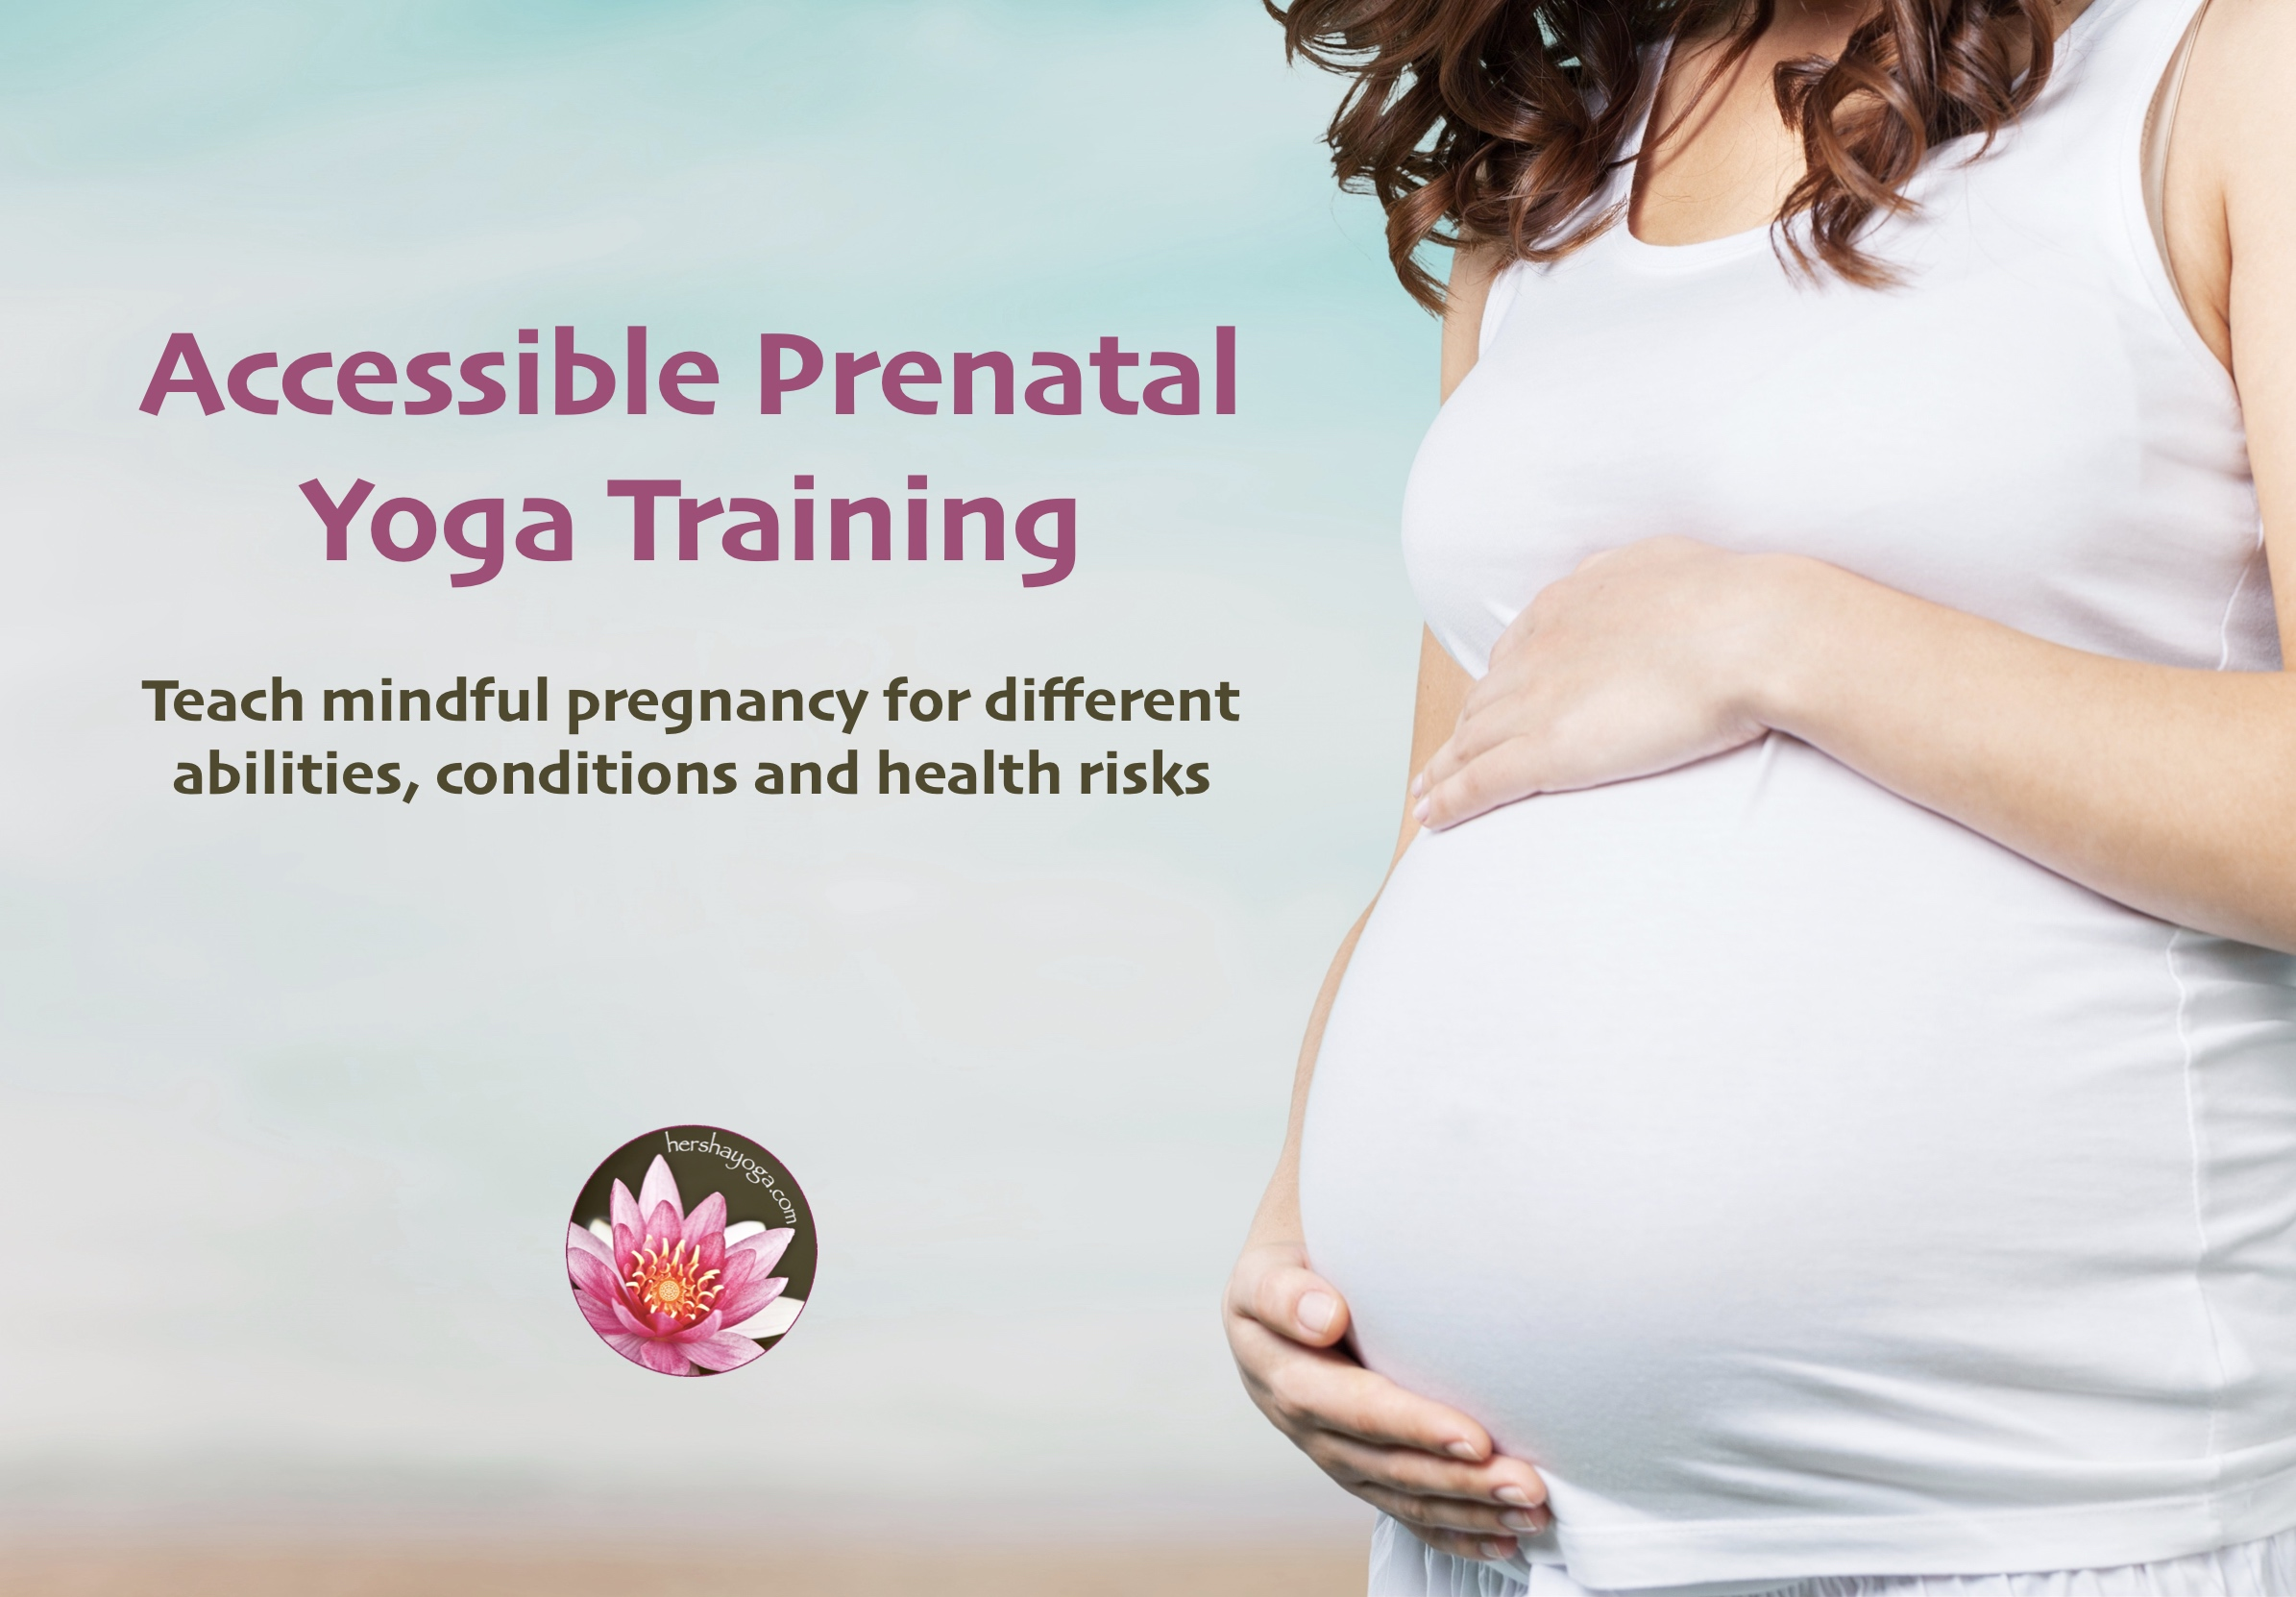 Study Online - Accessible Prenatal Yoga Training